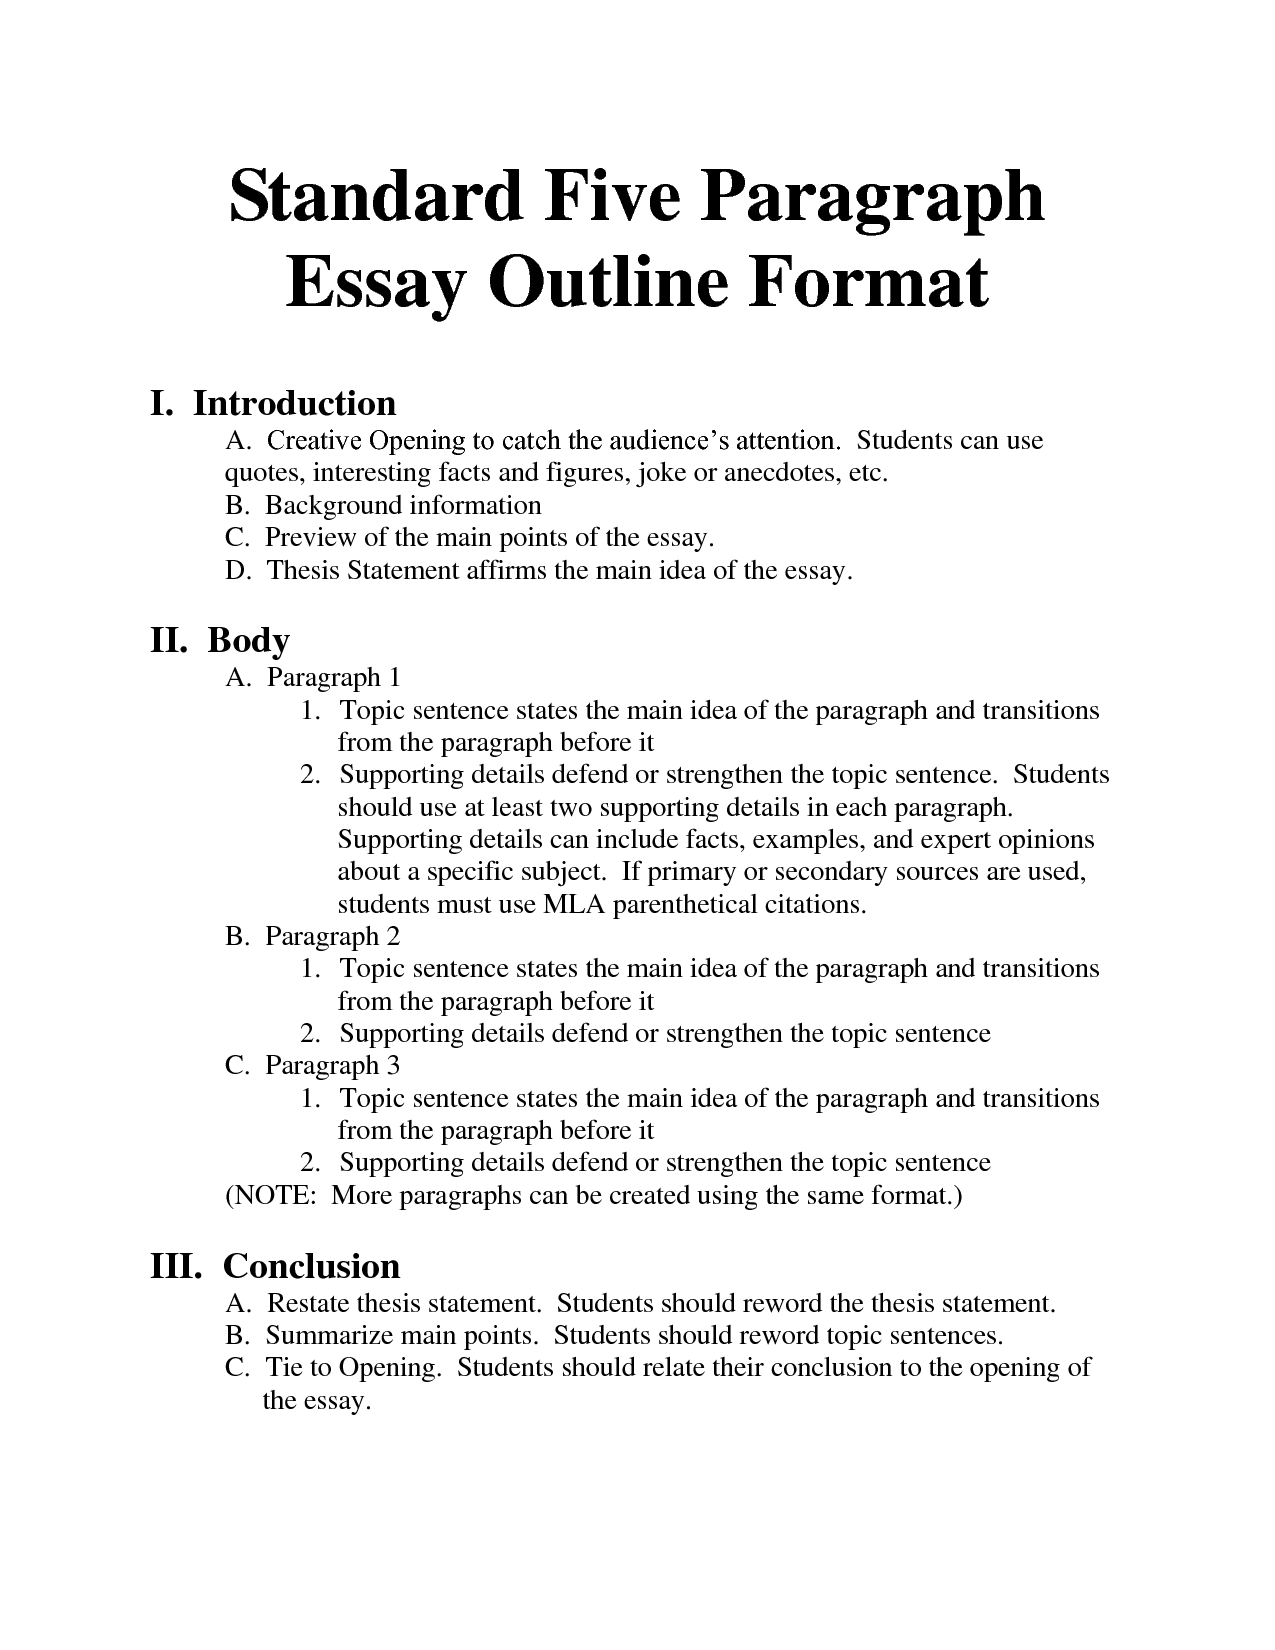 Example Of An Exemplification Essay The Influences Of Nature And  Outline Of Essay Sample Twelfth Night Essay On Love  Dcfbfdabfabcdb Outline Of Essay Samplehtml Exemplification  Essay